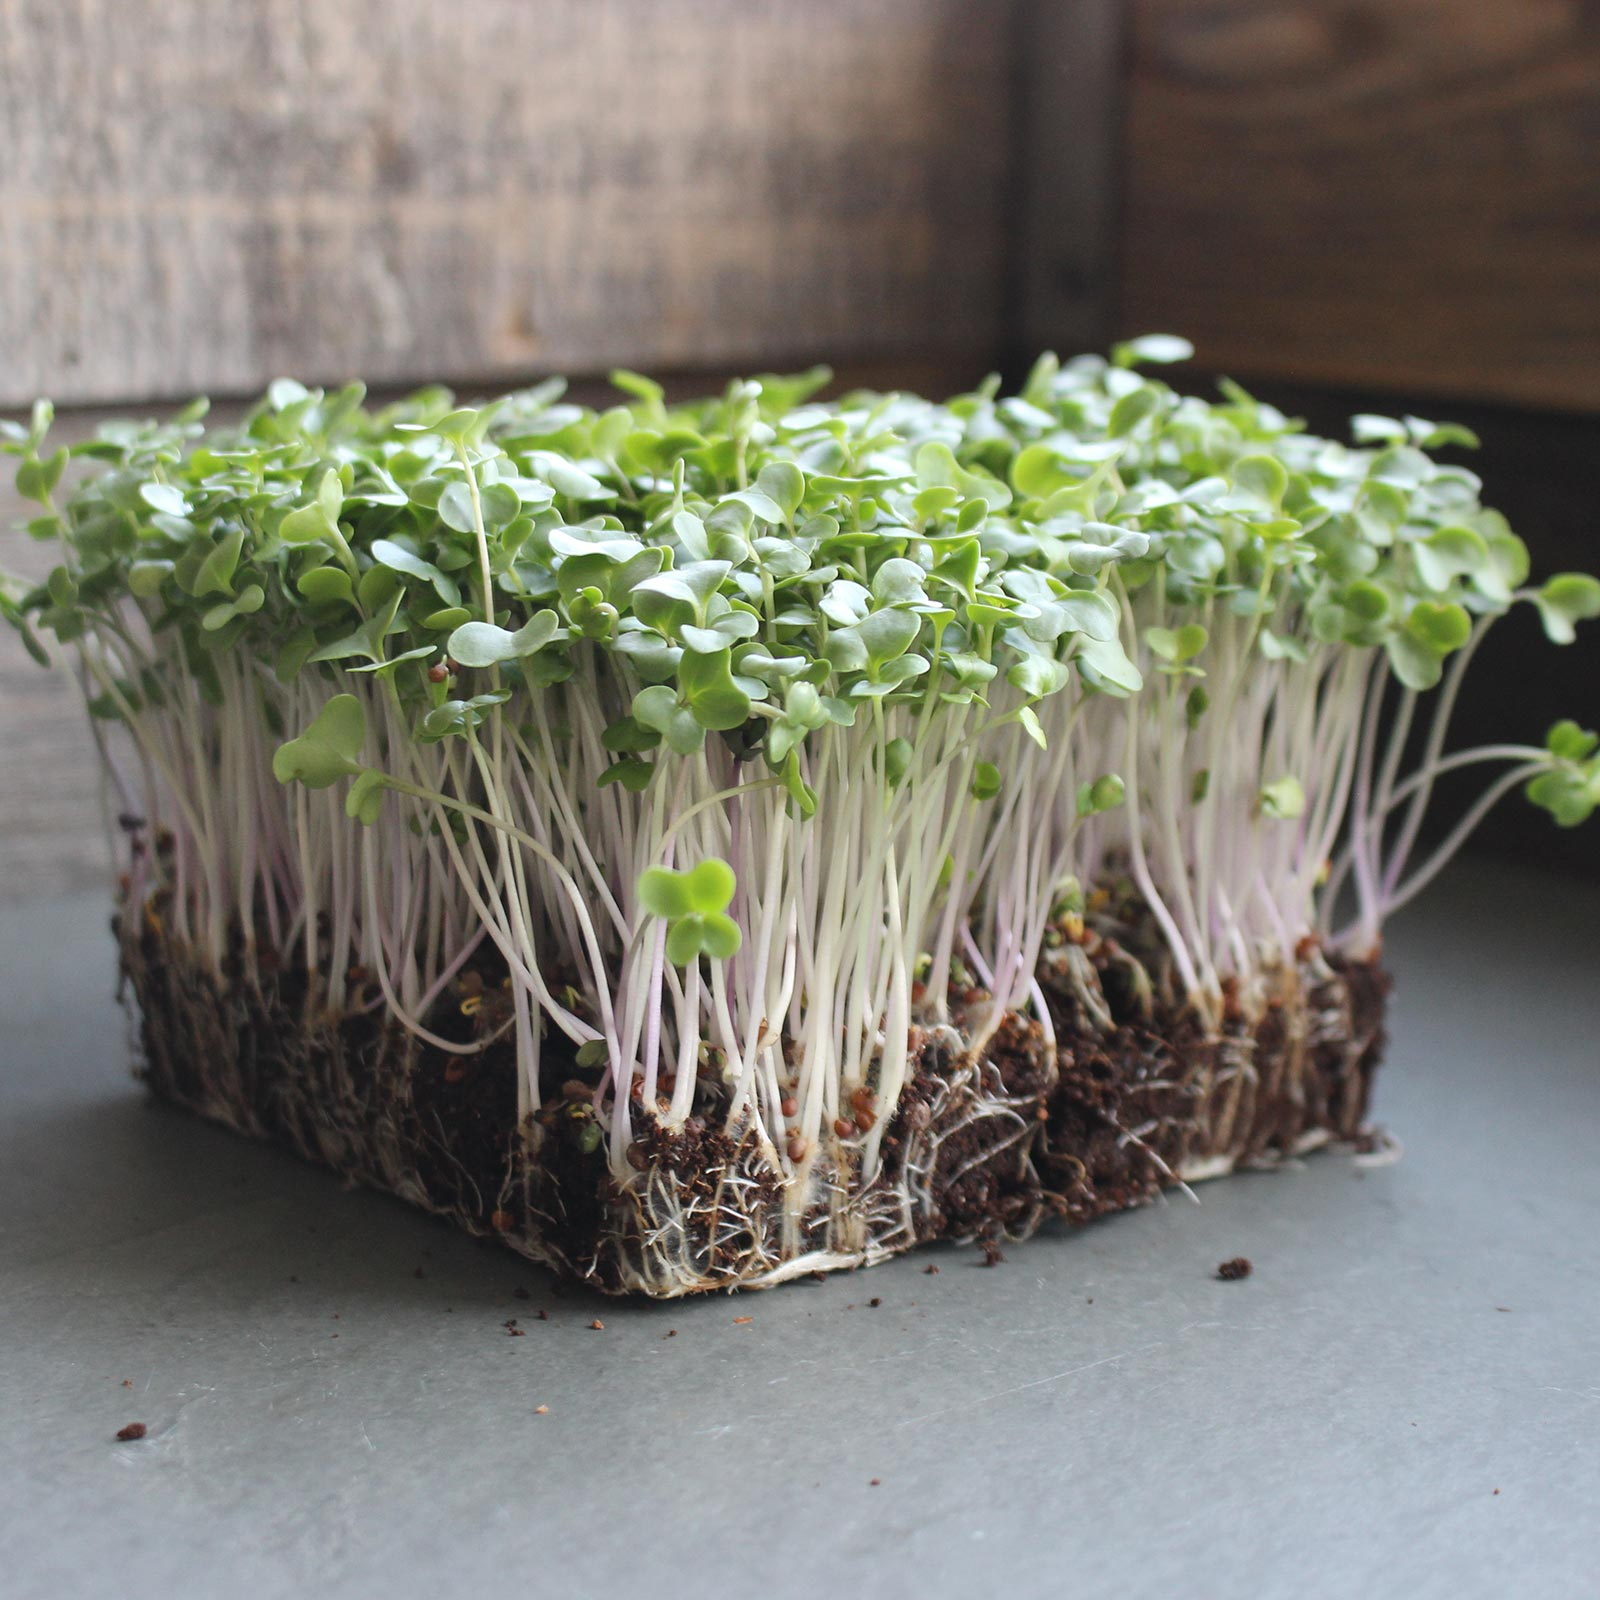 Broccoli microgreens have high concentrations of minerals—higher than mature broccoli.